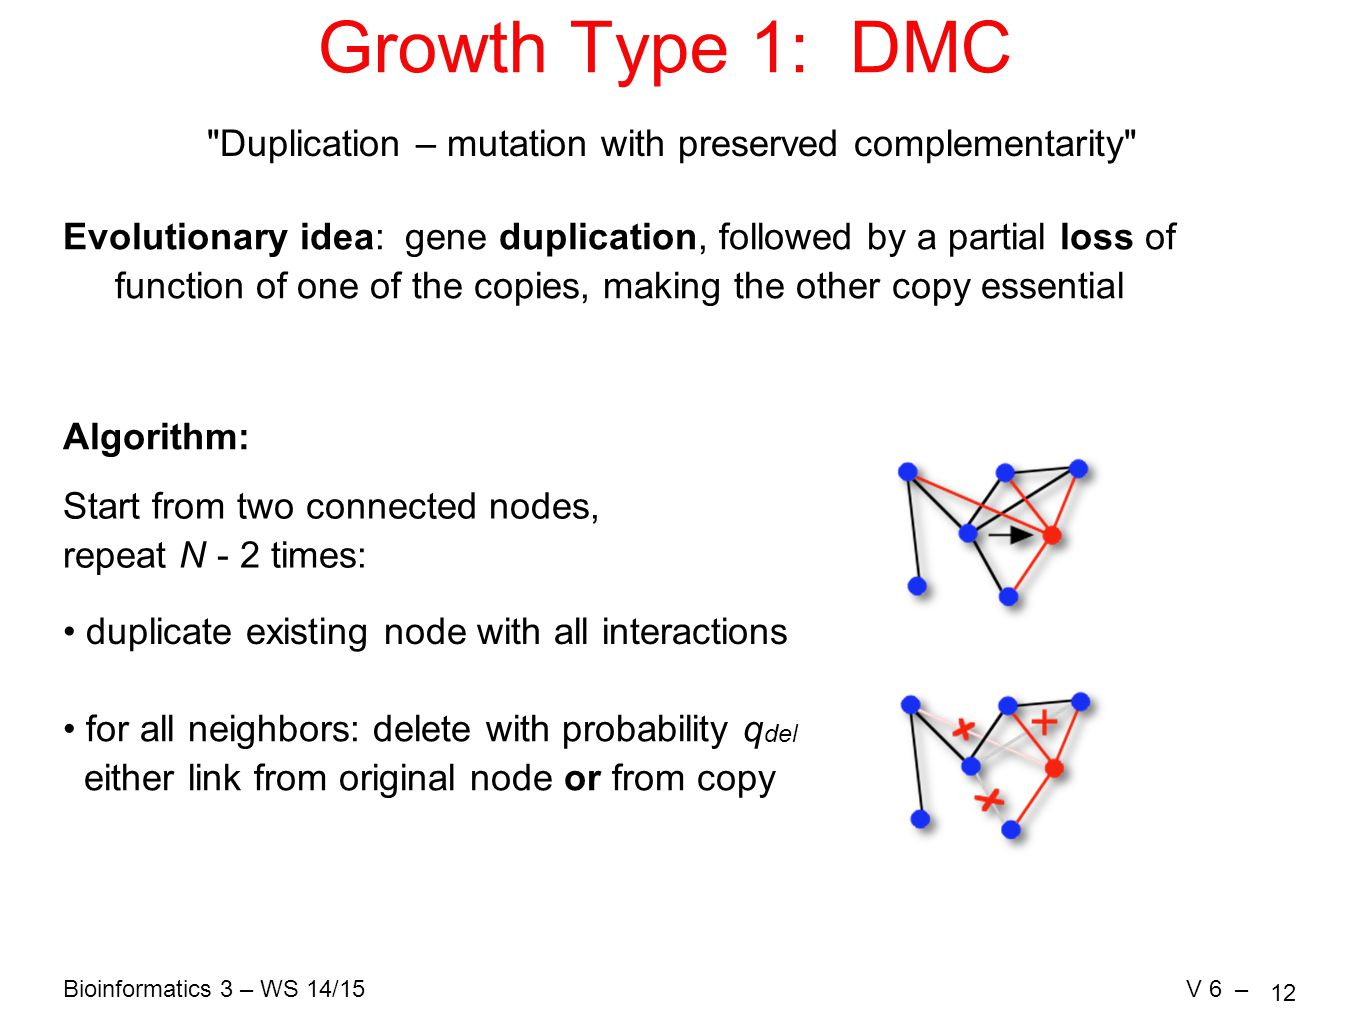 Bioinformatics 3 – WS 14/15V 6 – 12 Growth Type 1: DMC Duplication – mutation with preserved complementarity Evolutionary idea: gene duplication, followed by a partial loss of function of one of the copies, making the other copy essential Algorithm: duplicate existing node with all interactions for all neighbors: delete with probability q del either link from original node or from copy Start from two connected nodes, repeat N - 2 times: